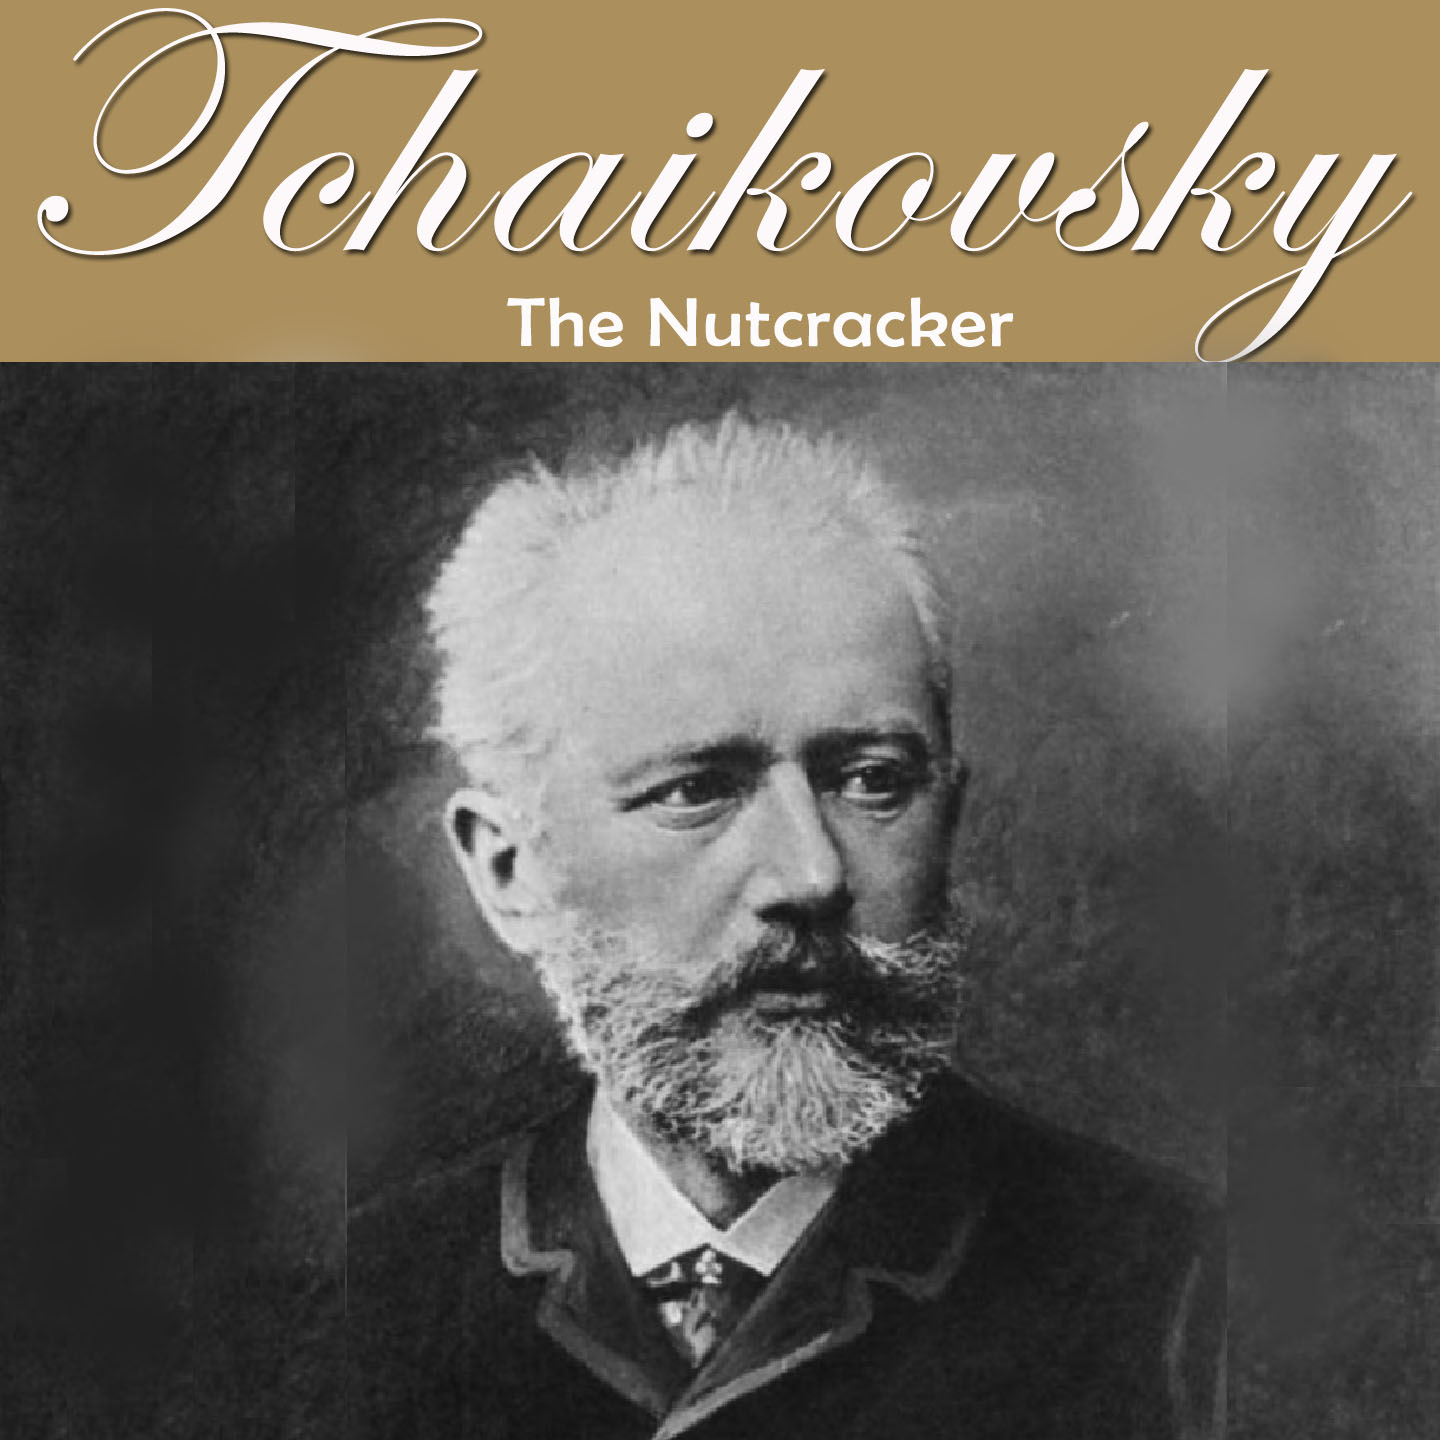 Tchaikovsky Lecture